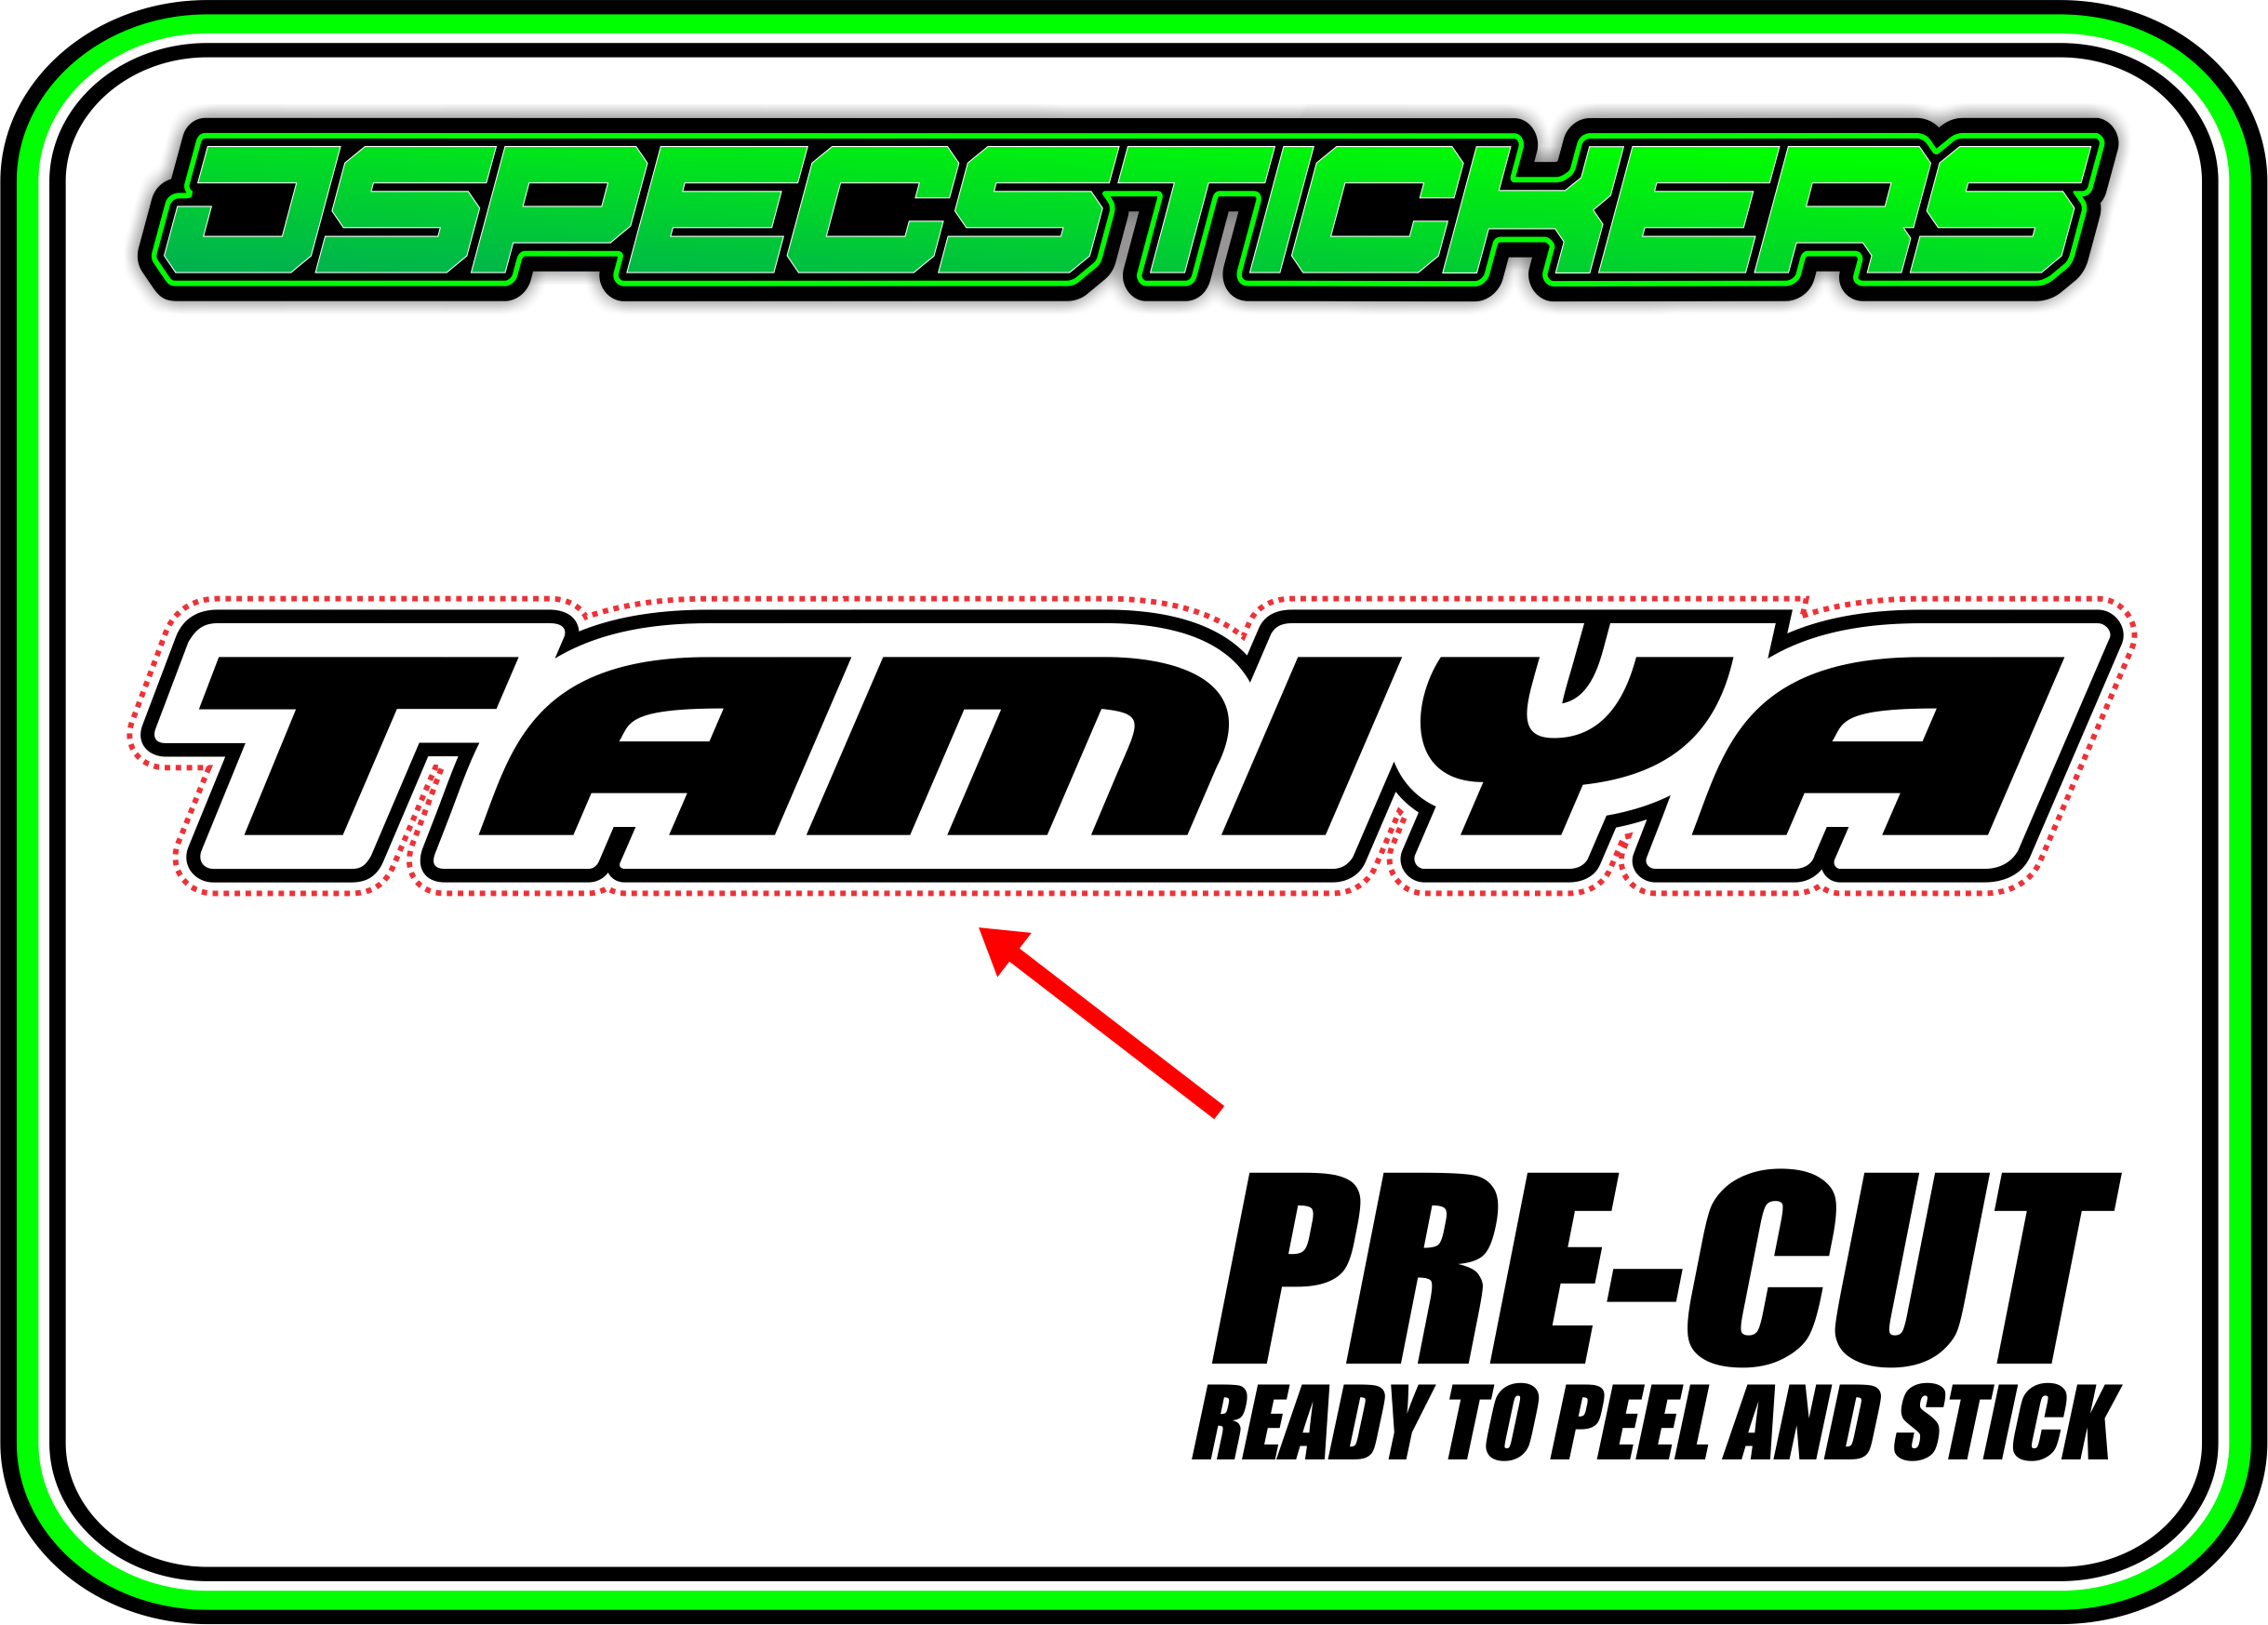 TAMIYA TRF RC STICKER SHEET A5 - Jspec Stickers